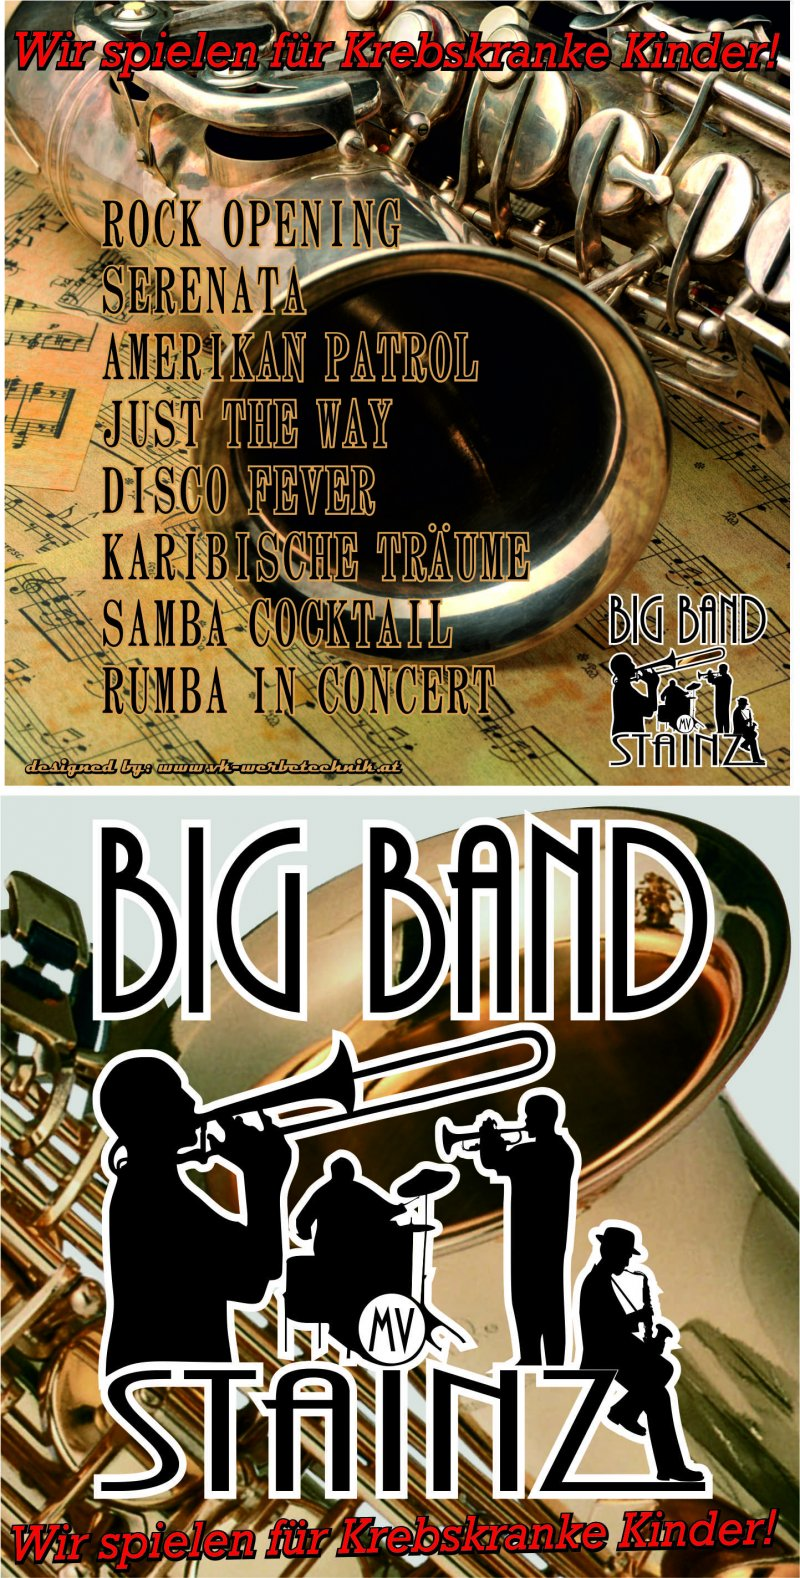 Big-Band-Stainz